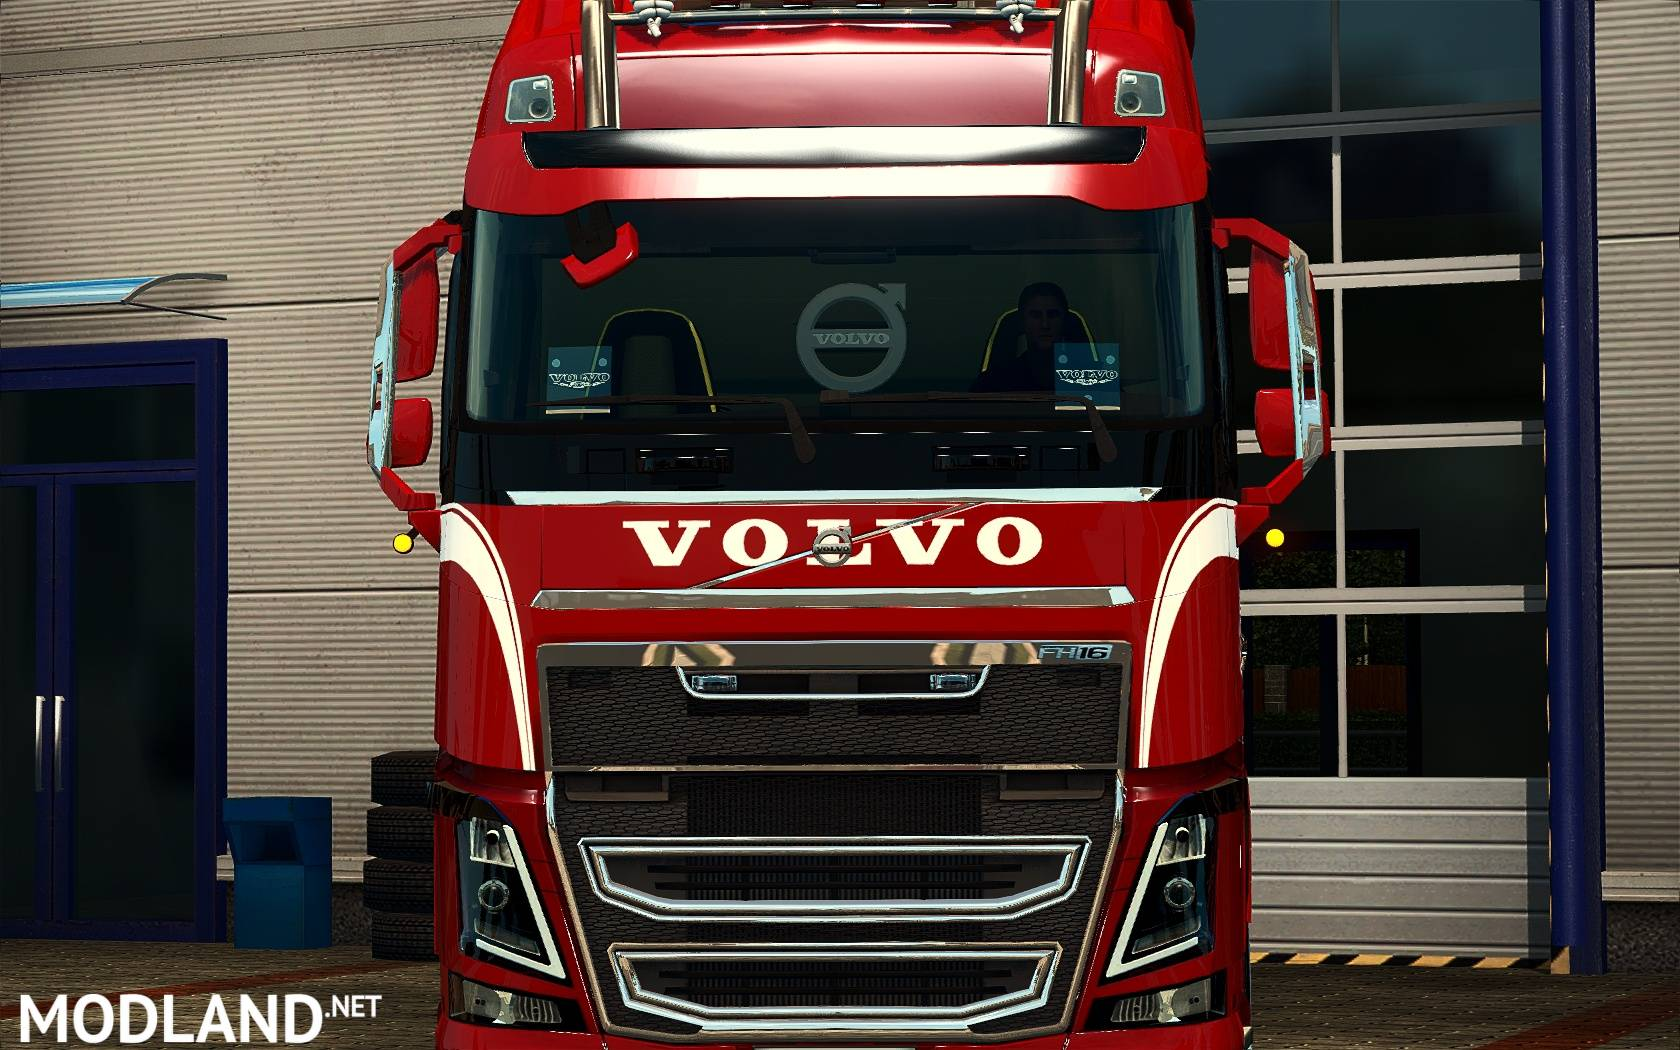 1 describe village volvo s service package Assignment 1: village volvoq-1: describe village volvo's service packageans-1: core service package: quality repair service on out of warranty volvosthis consi.